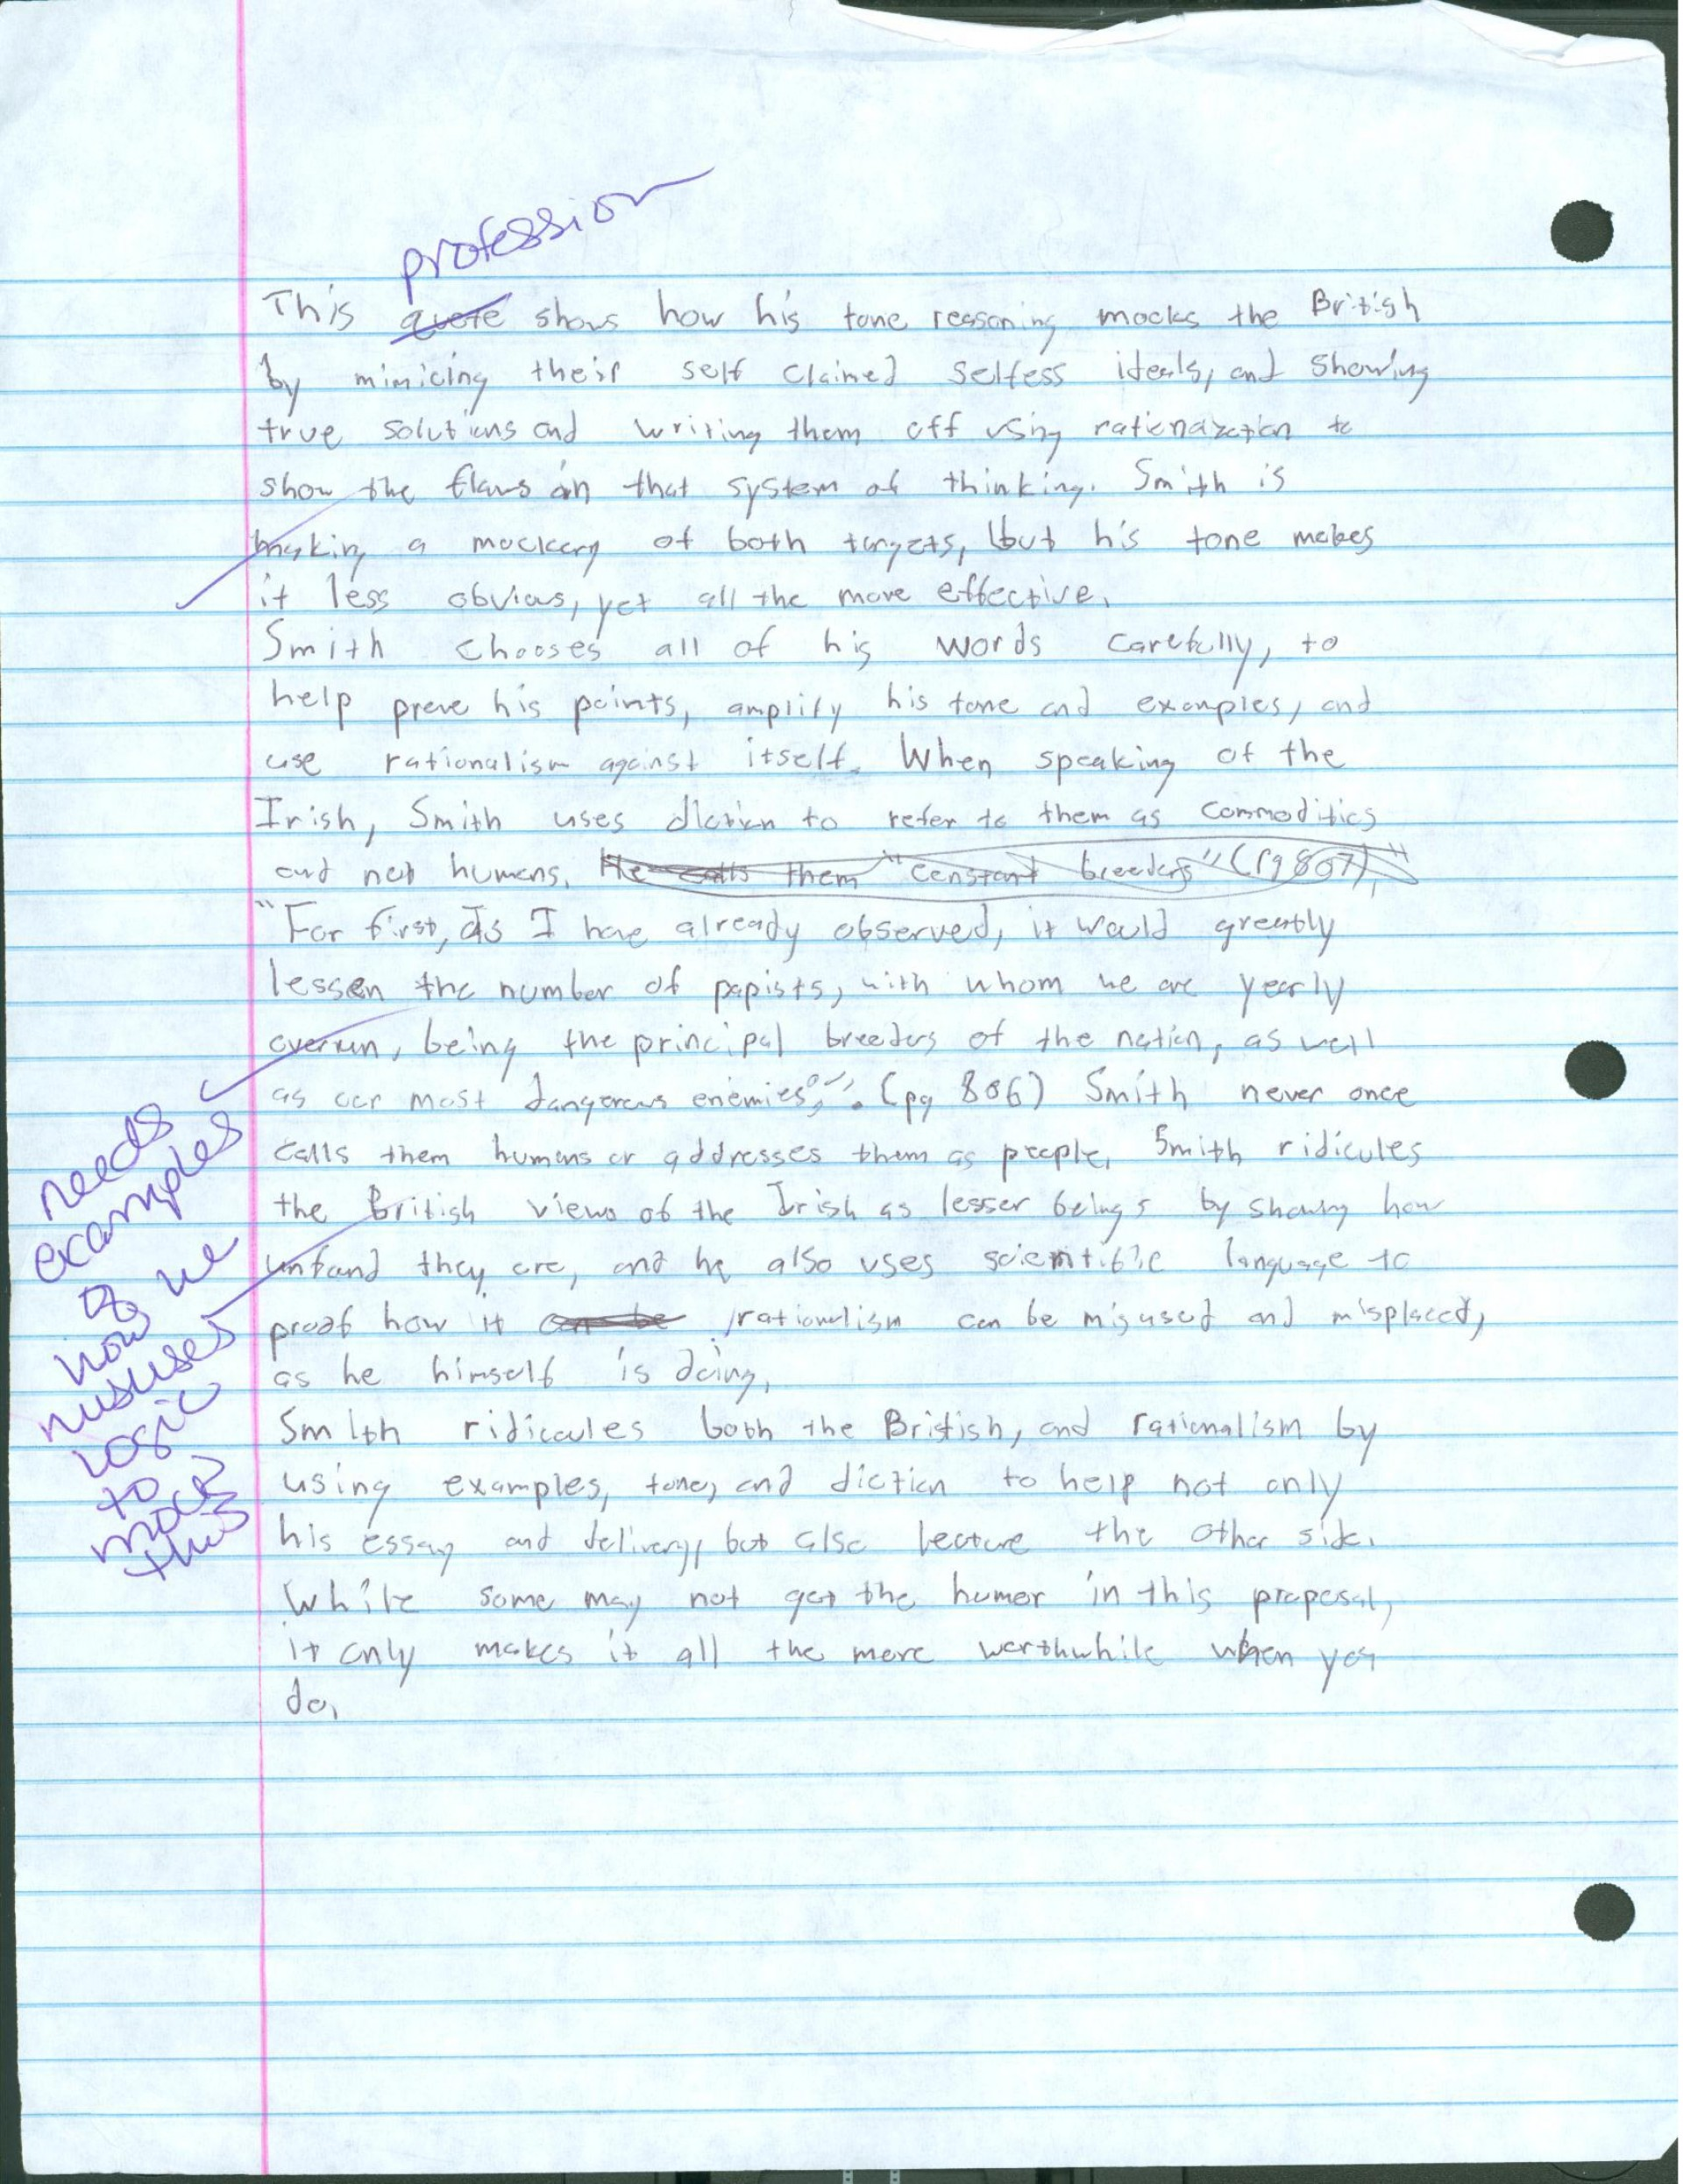 016 Research Paper Modest Proposal Essay Part 2 Formidable A Topics 1920